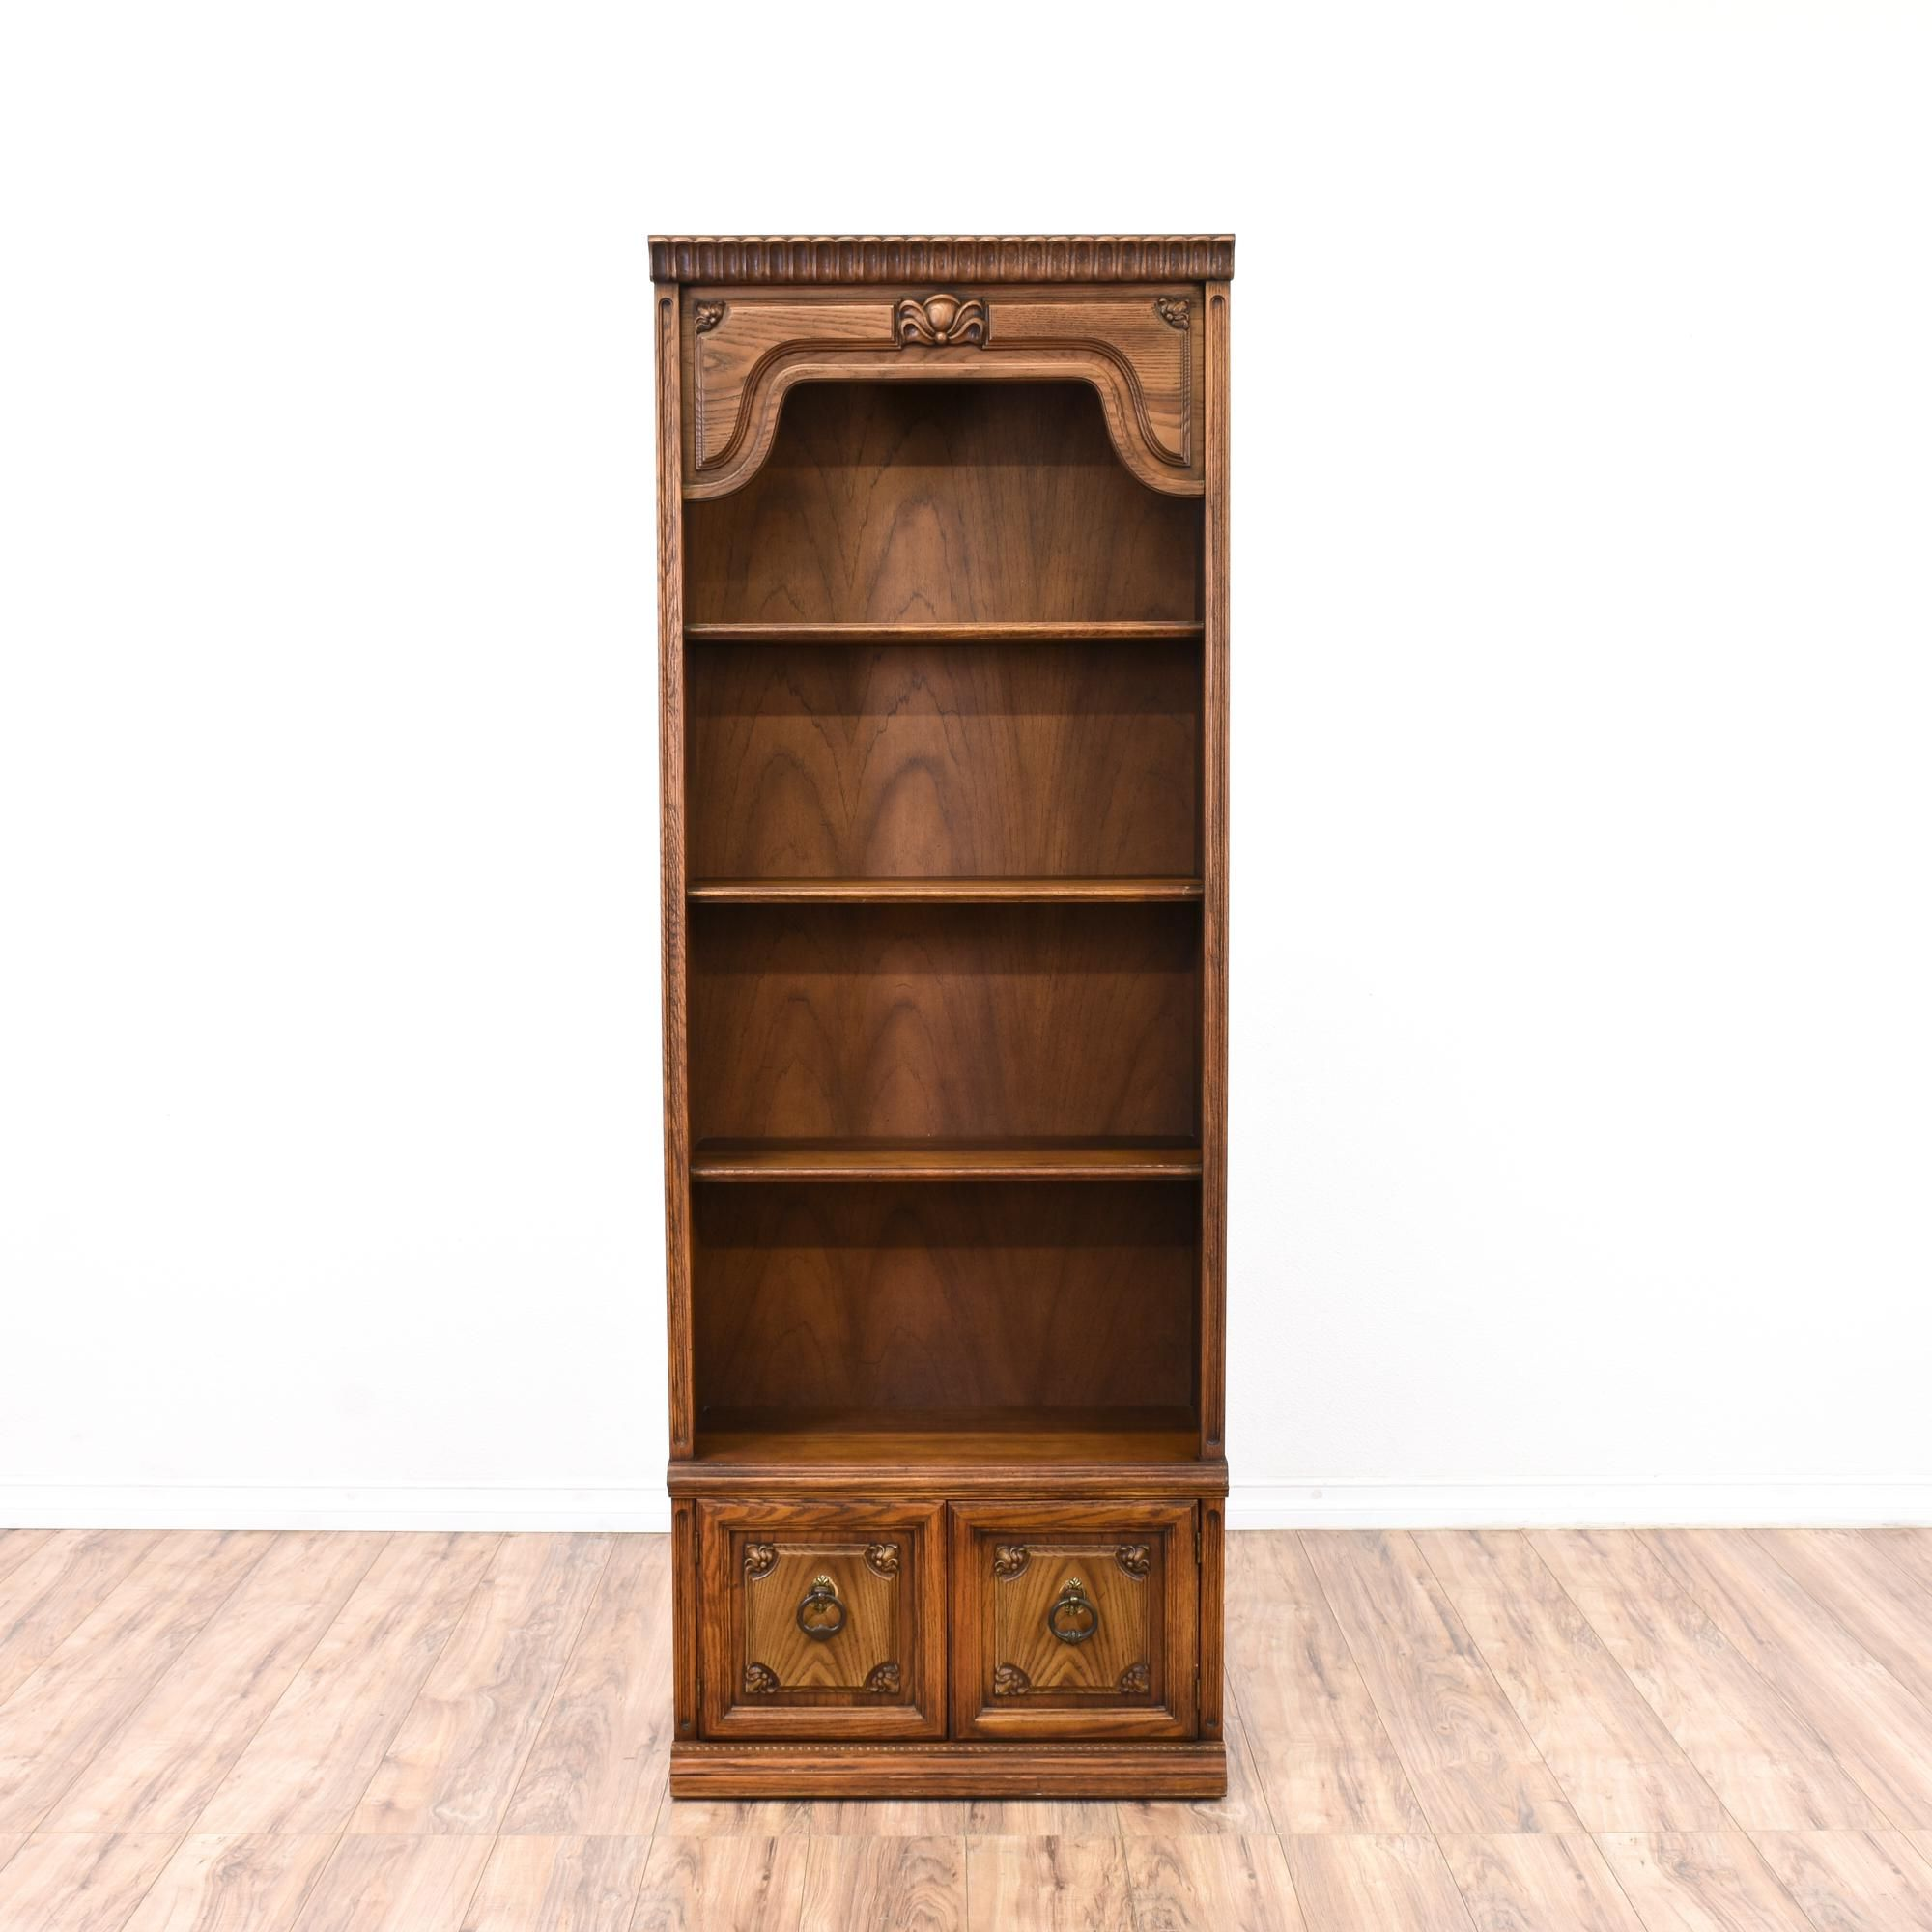 wood open and bookcases images fnish shelves bookshelf trends white solid oak bookcase one dark beautiful